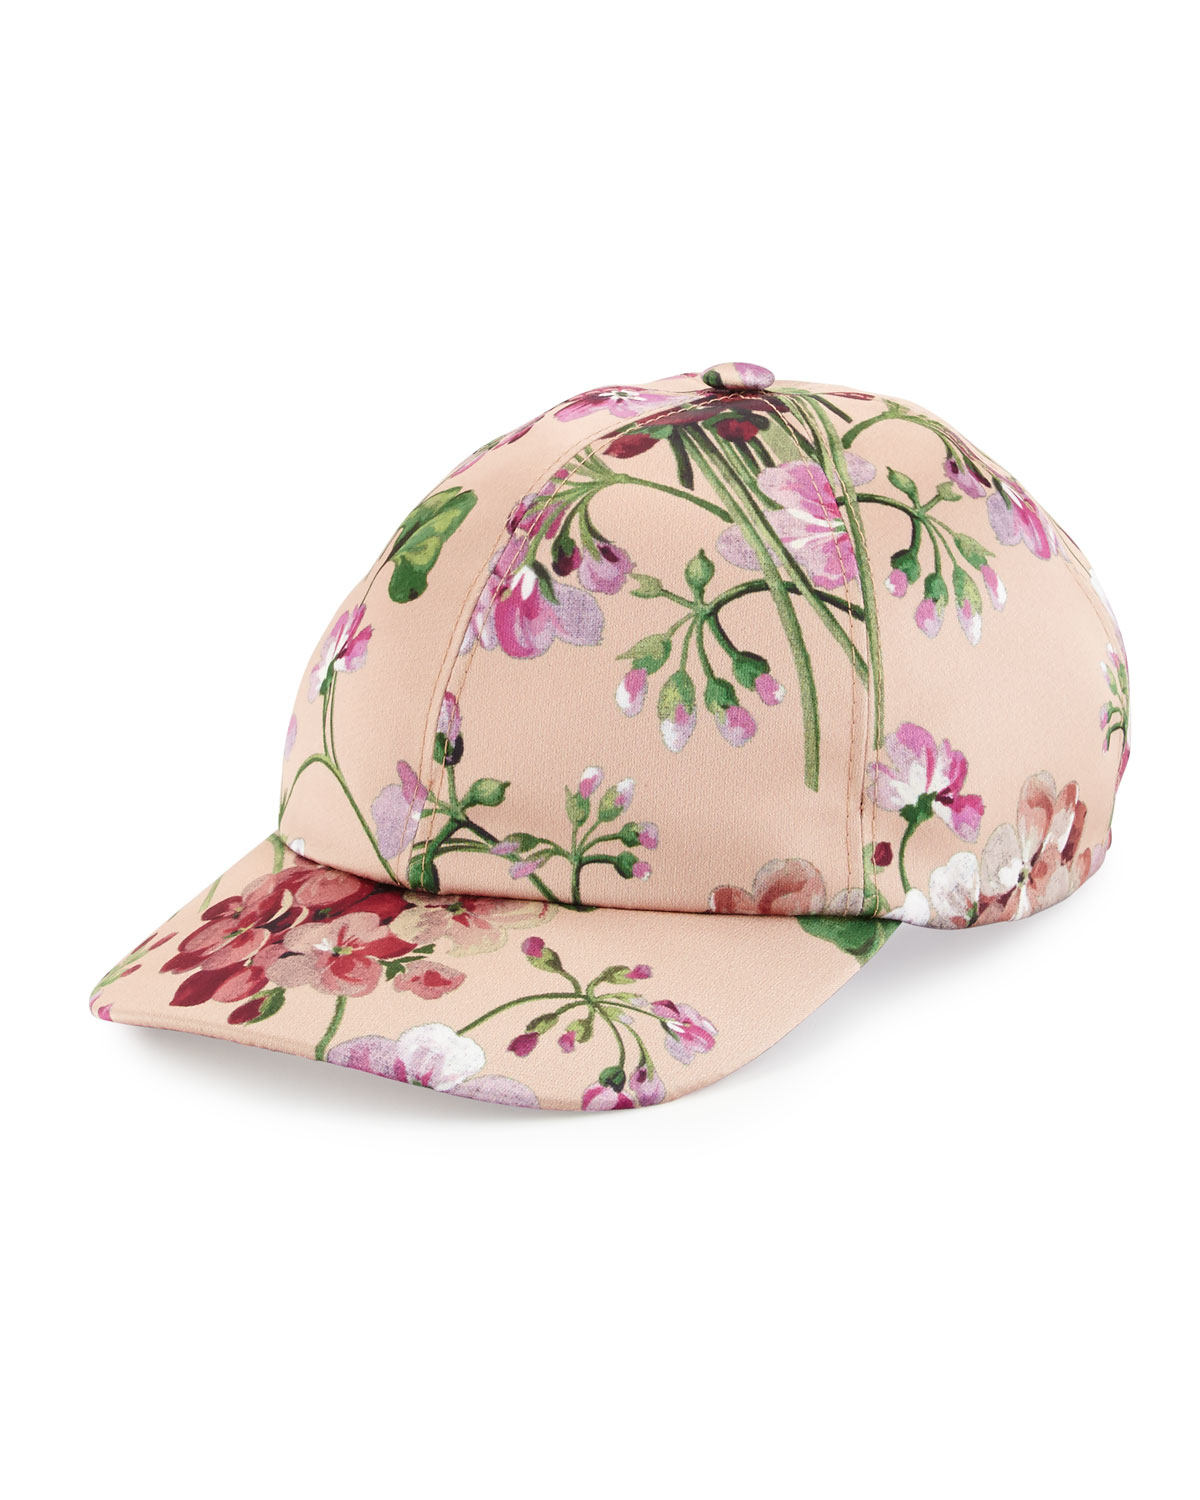 d86f802d140 Gallery. Previously sold at  Bergdorf Goodman · Women s Baseball Caps ...